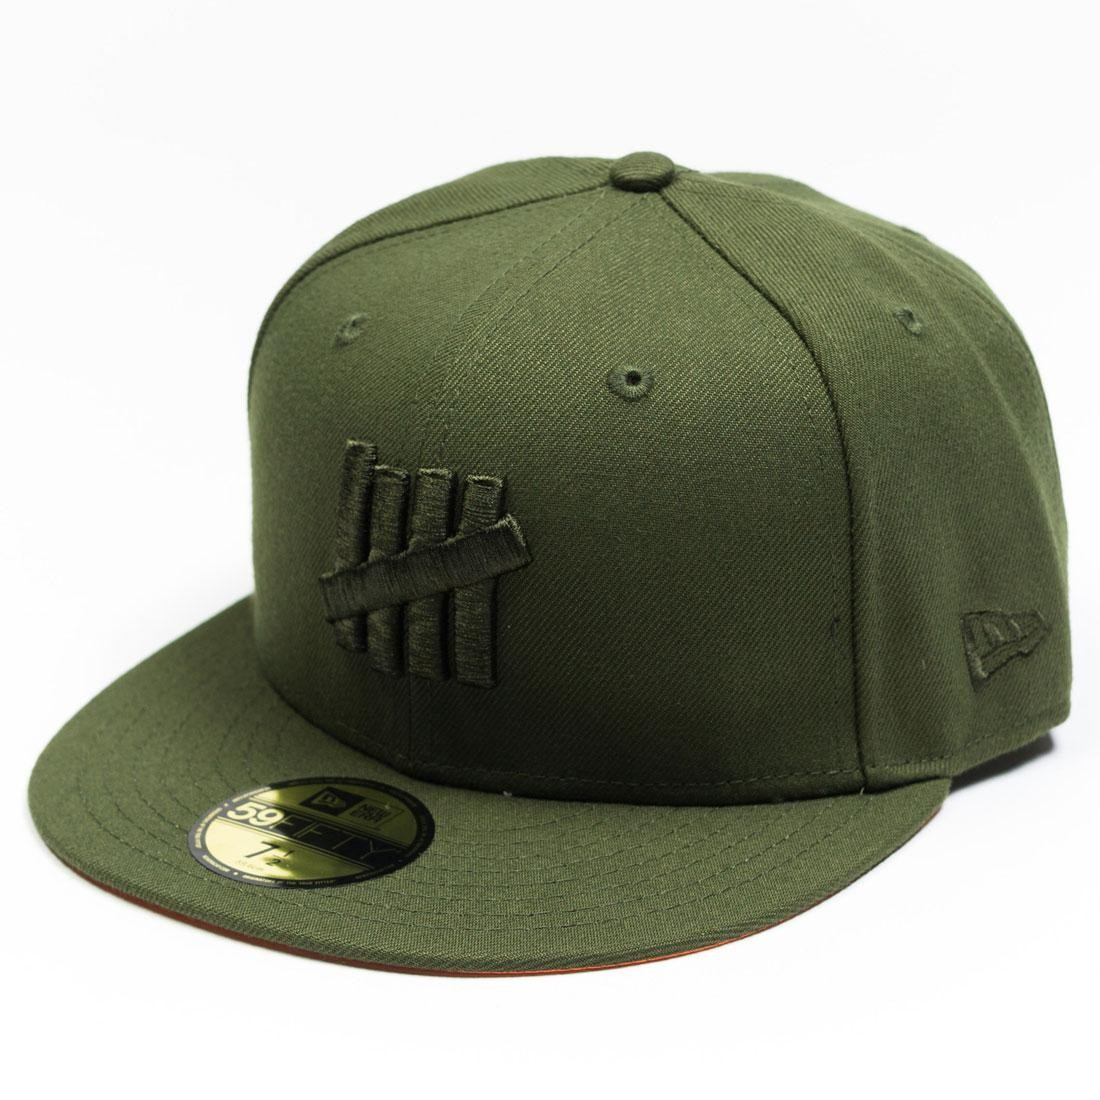 Undefeated x New Era Eject Fitted Cap green olive 07e8f001d8c